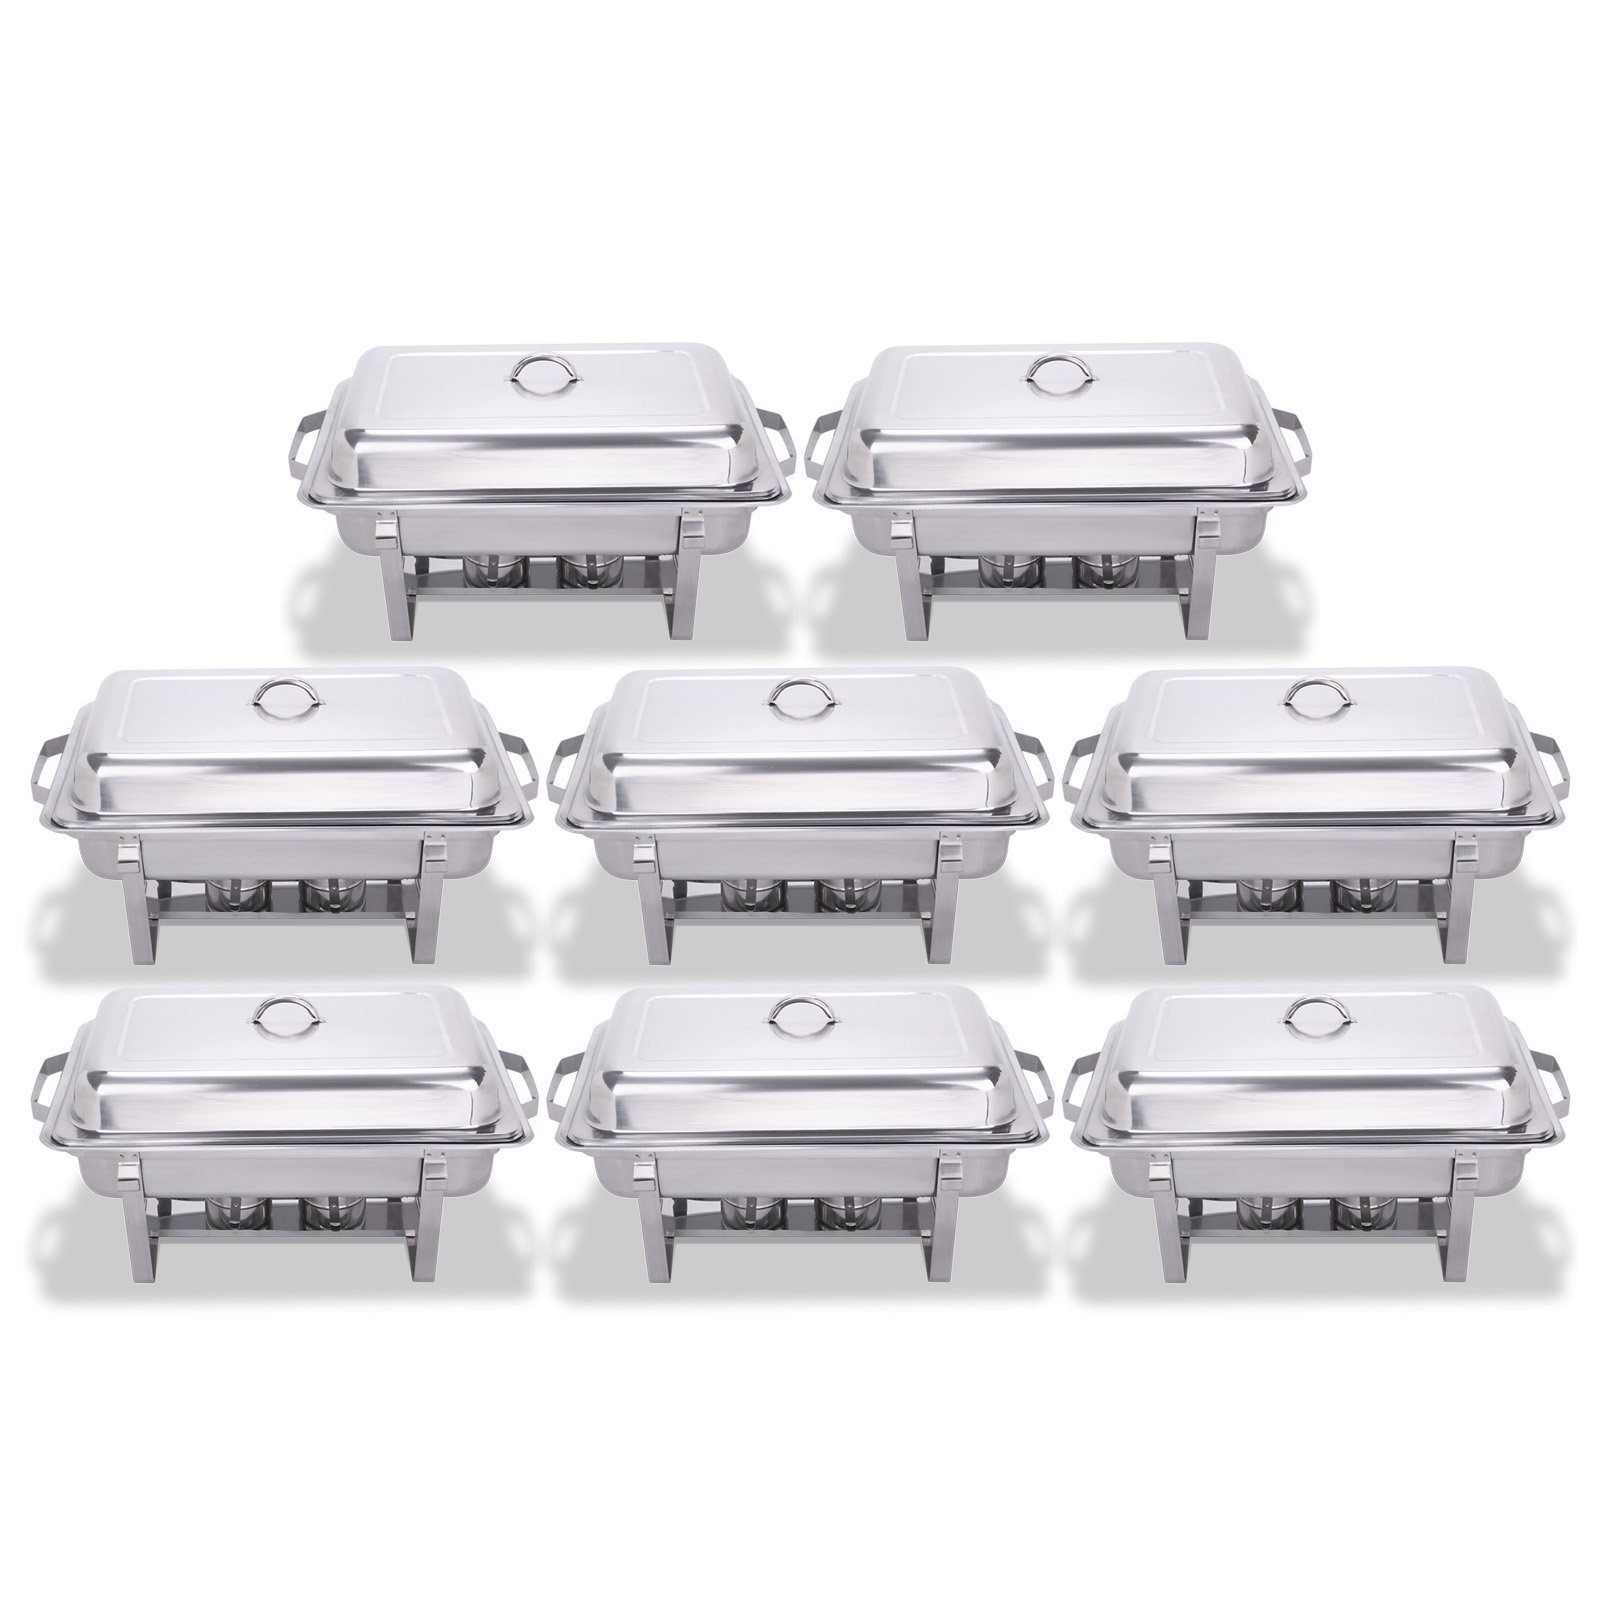 FoodKing Chafing Dish Set of 8 Stainless Steel Chafer Full Size 8 Quart Chafing Dishes for Catering Buffet Warmer Tray Kitchen Party Dining (Set of 8) by FoodKing